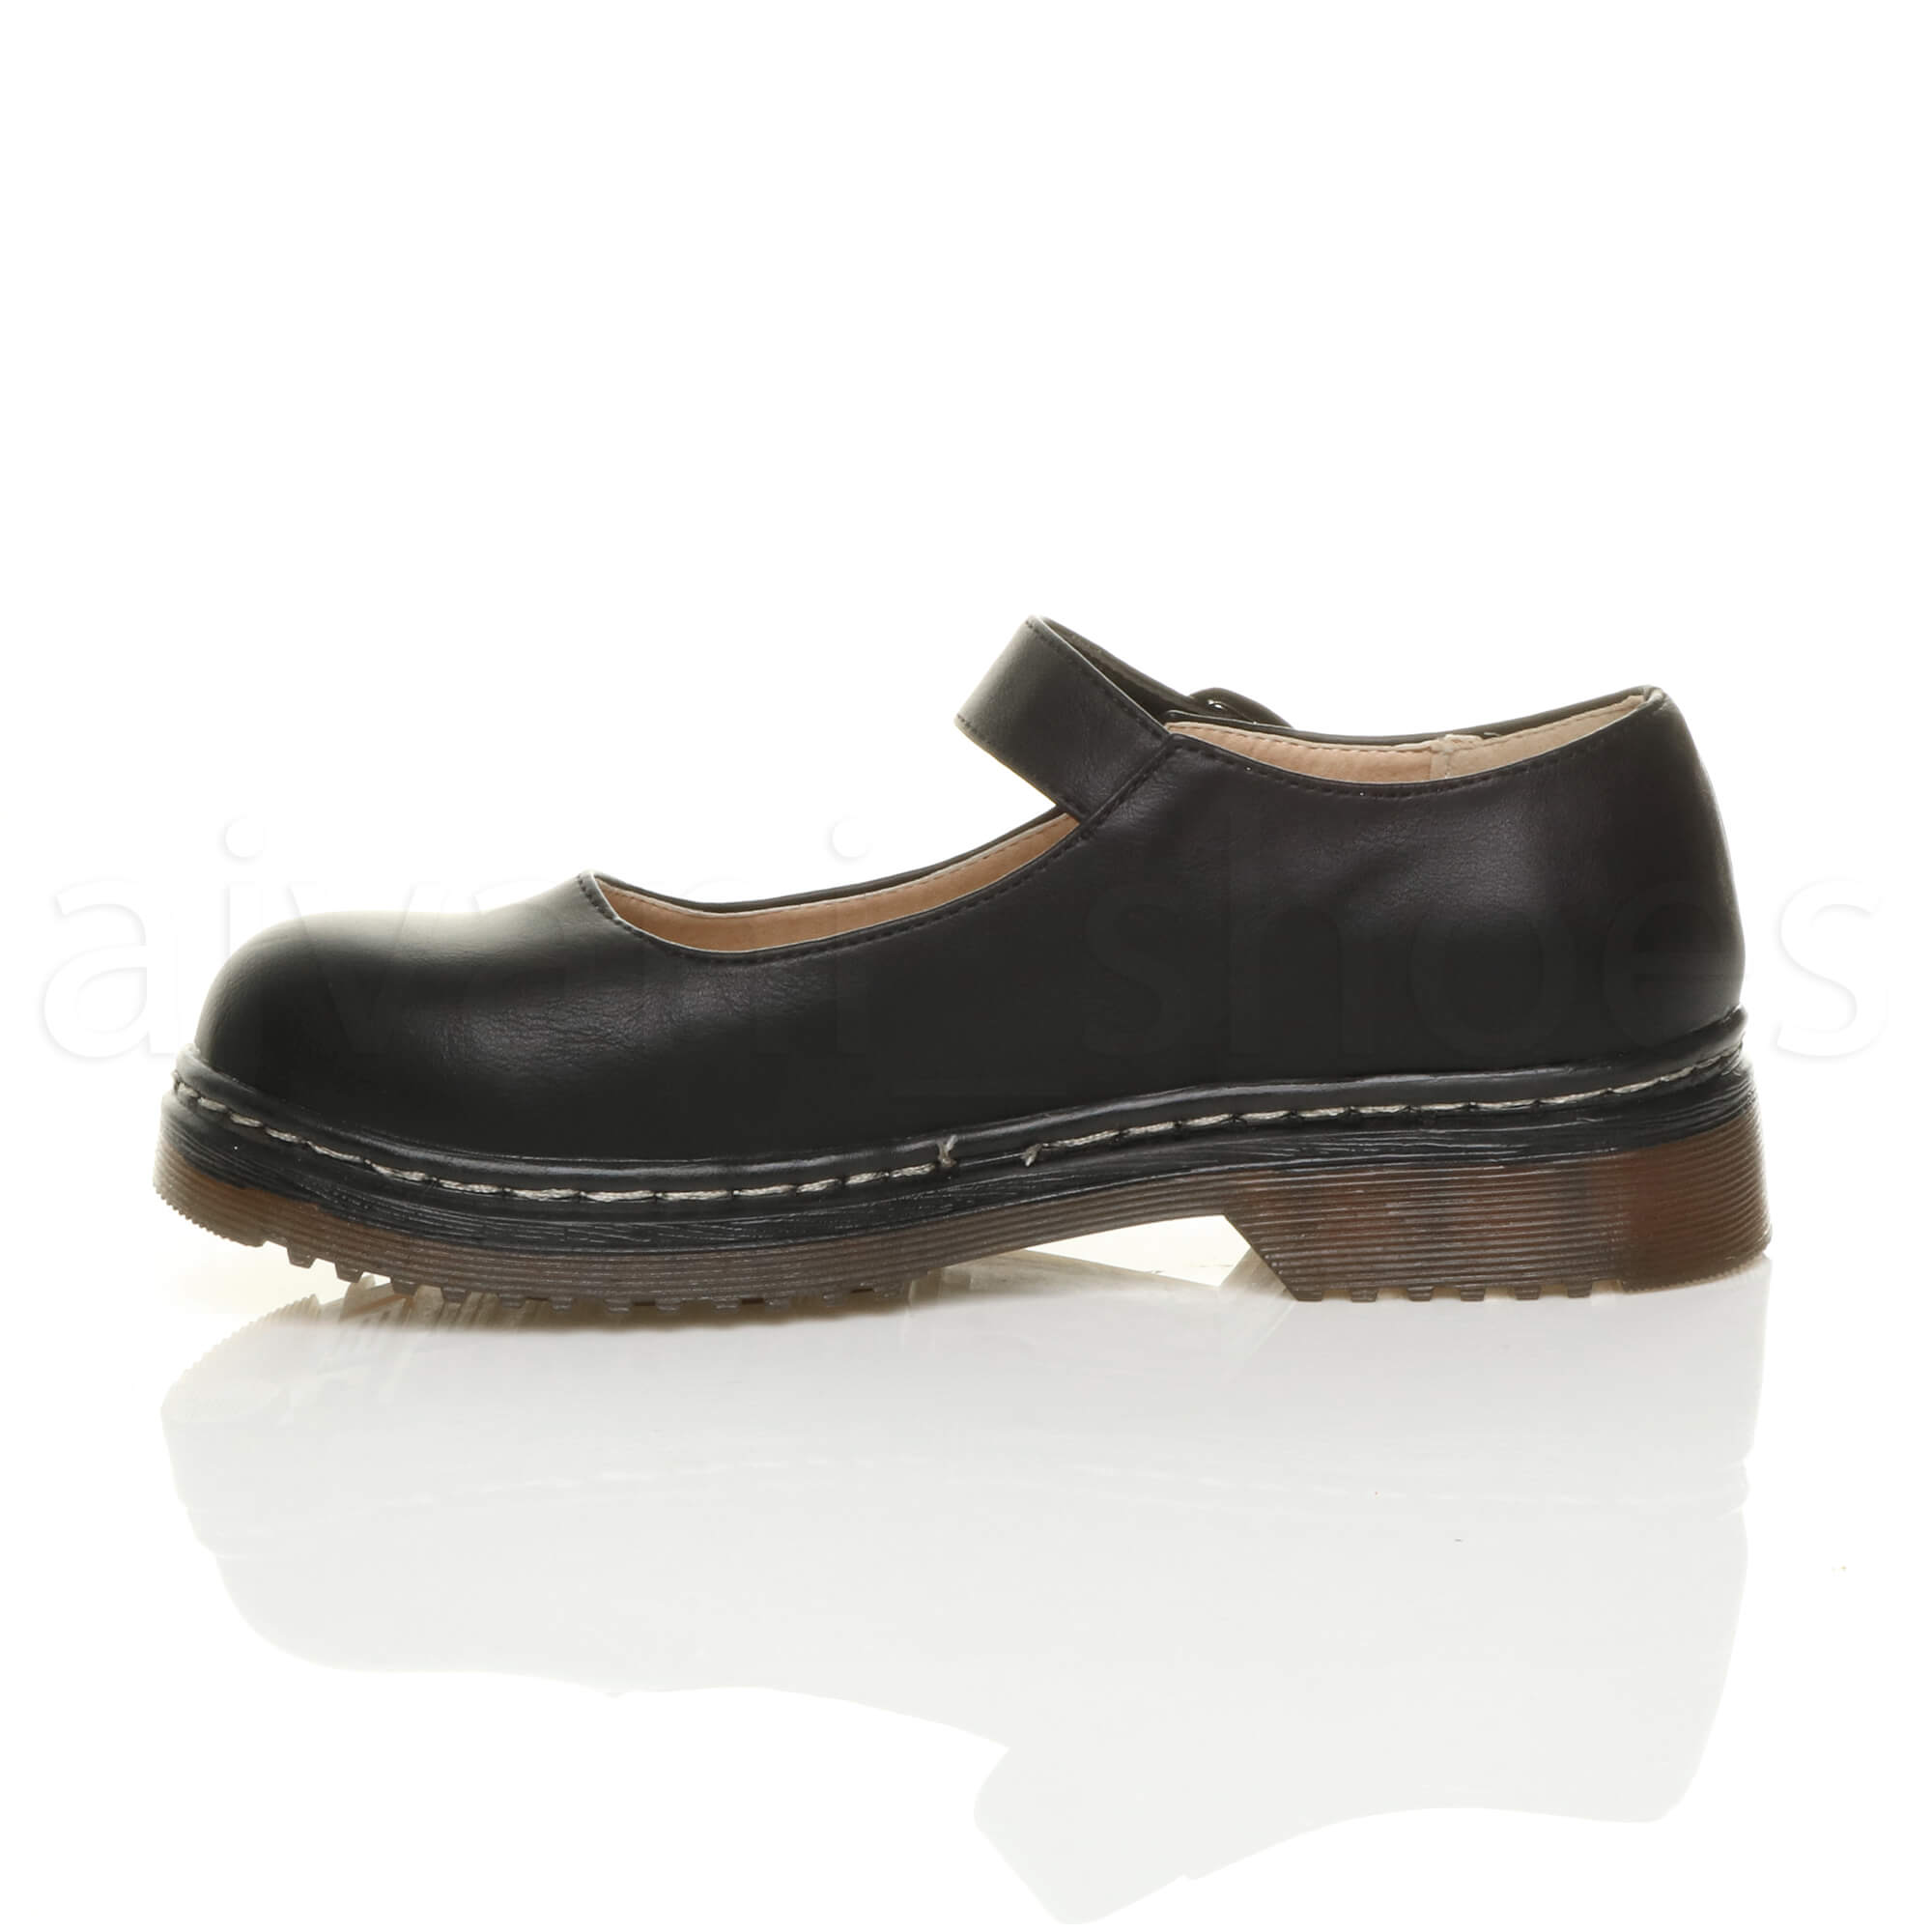 WOMENS-LADIES-LOW-HEEL-CHUNKY-BUCKLE-MARY-JANE-STRAP-SMART-WORK-SHOES-SIZE